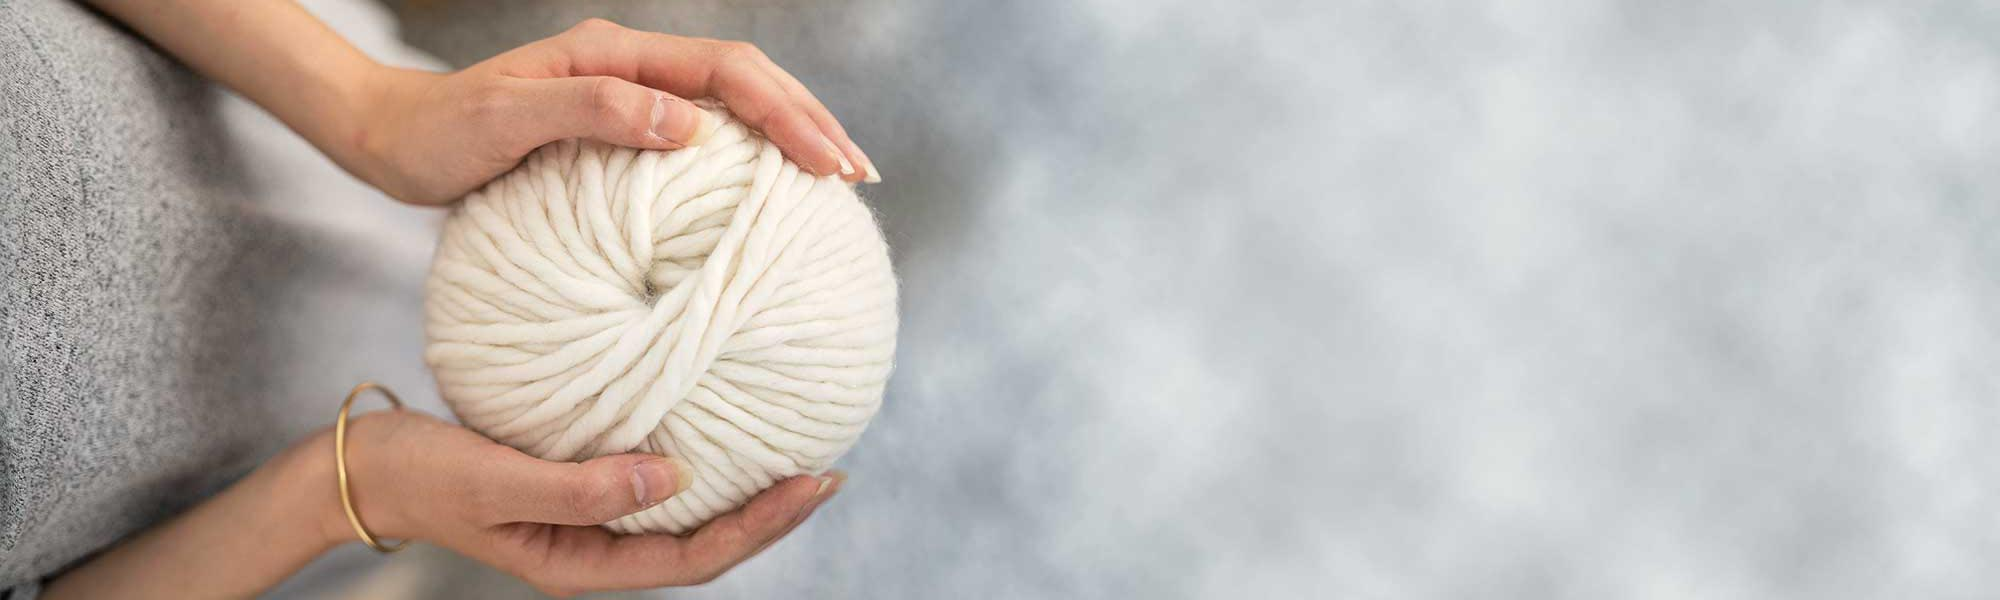 The Best Knitting Needles For Bulky Yarn The Knitting Needle Guide